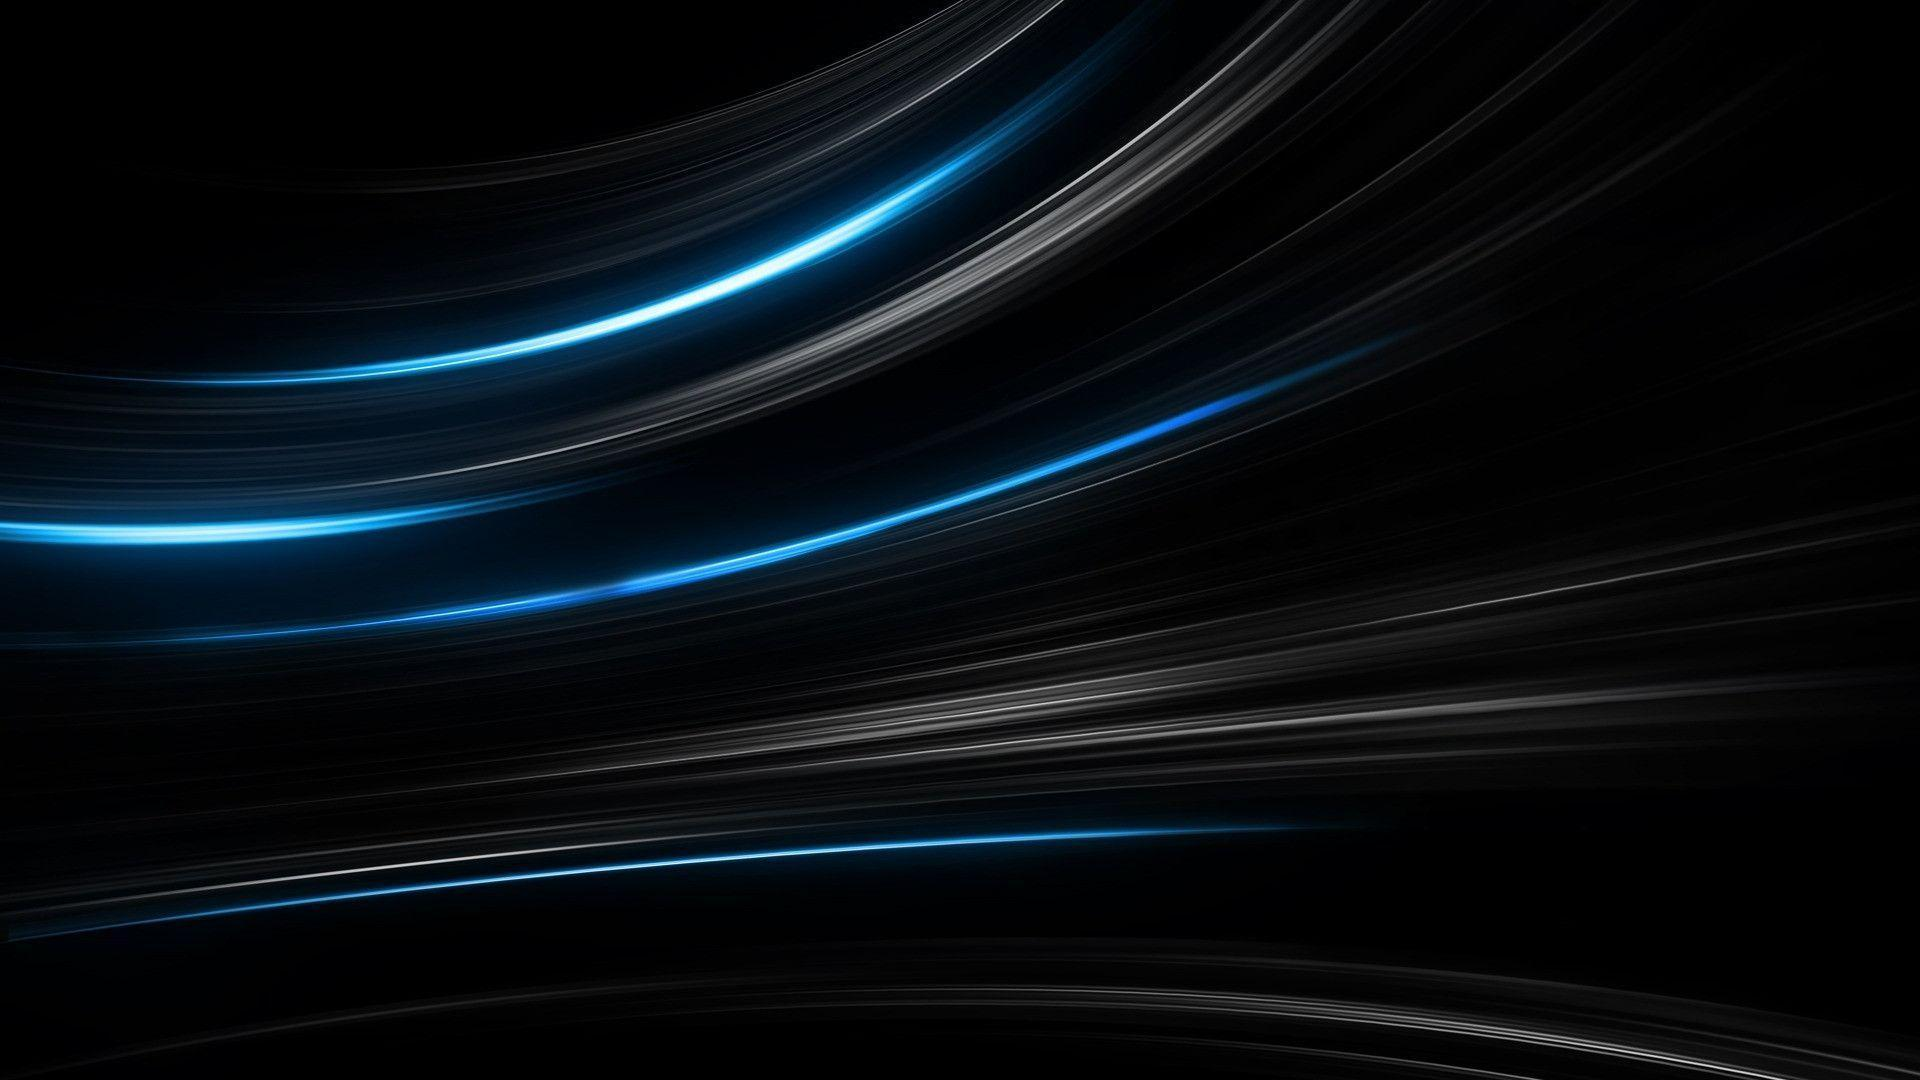 Wallpapers For > Black And Blue Abstract Wallpapers